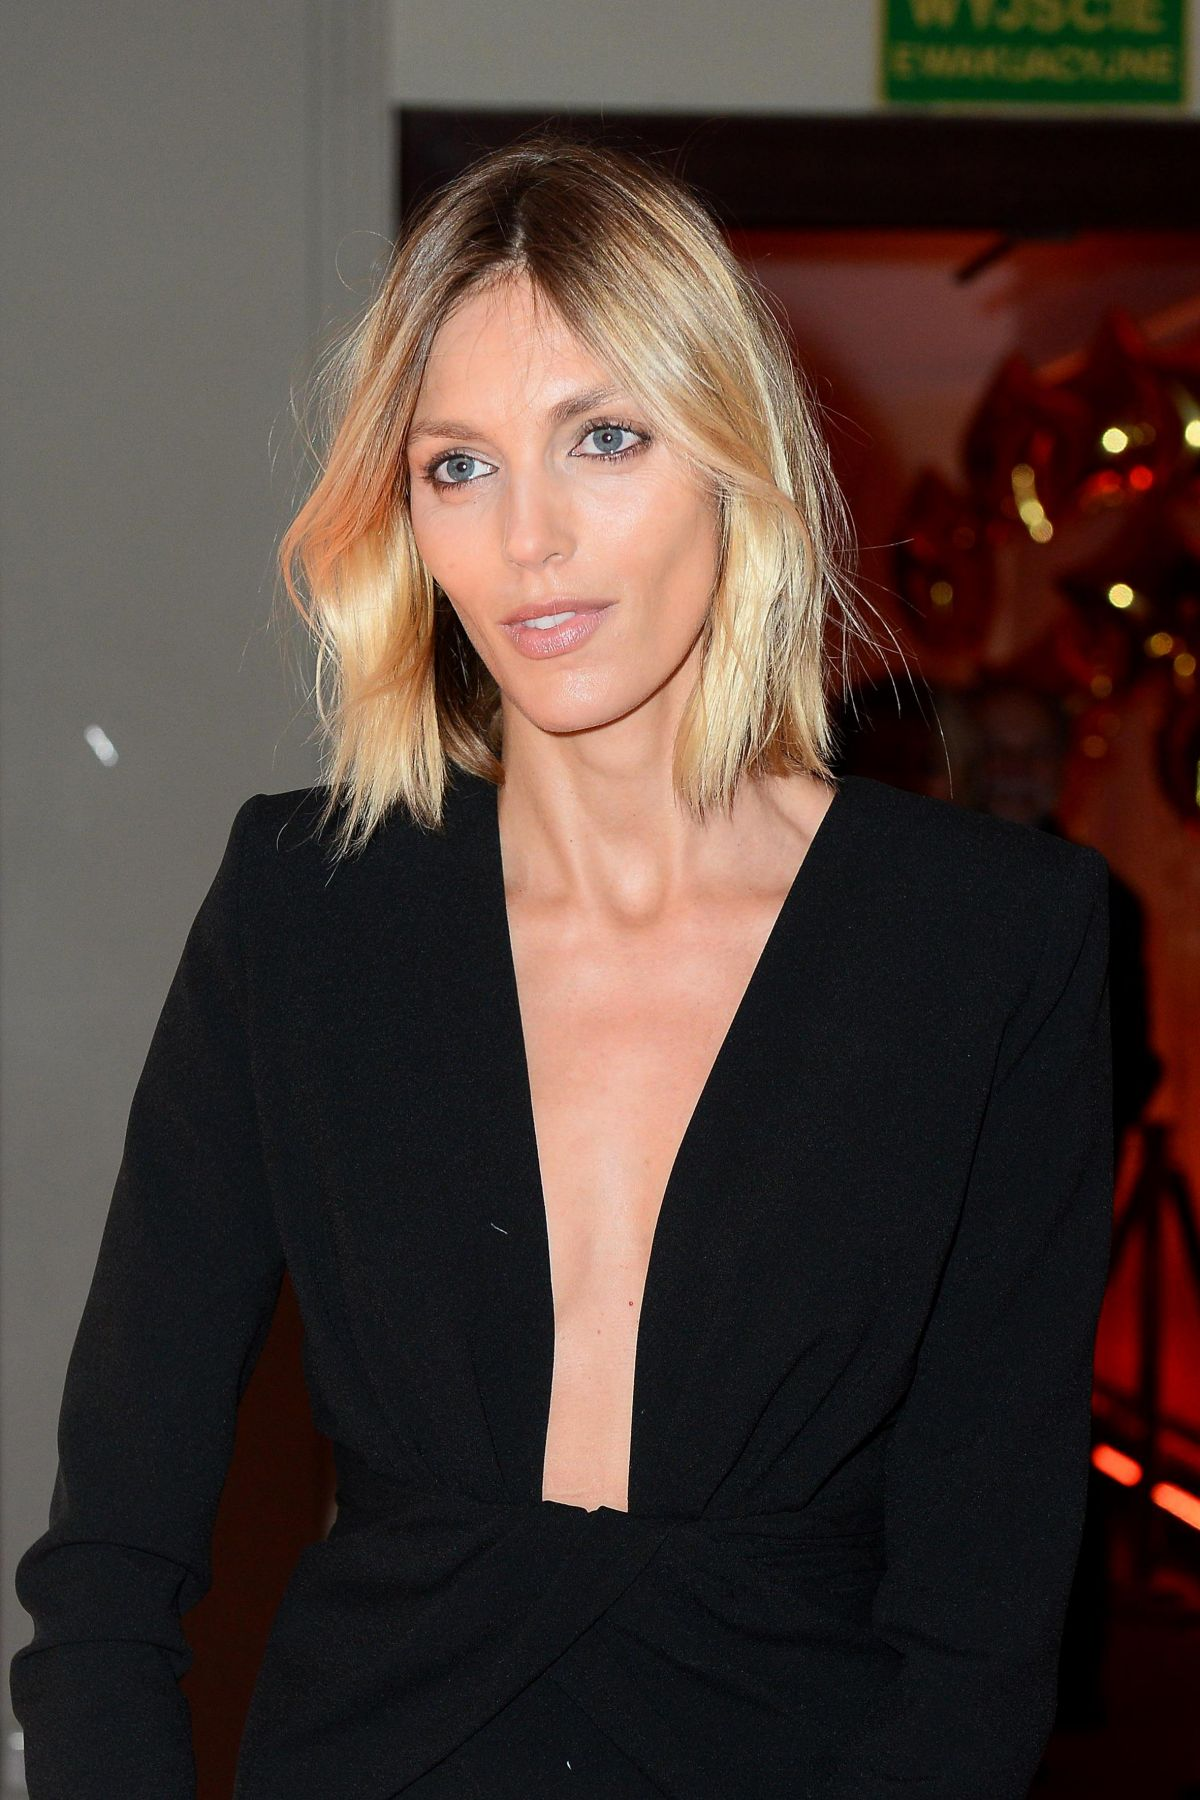 Anja Rubik Deep Decollete Dress - Anja Rubik Deep Decollete Dress